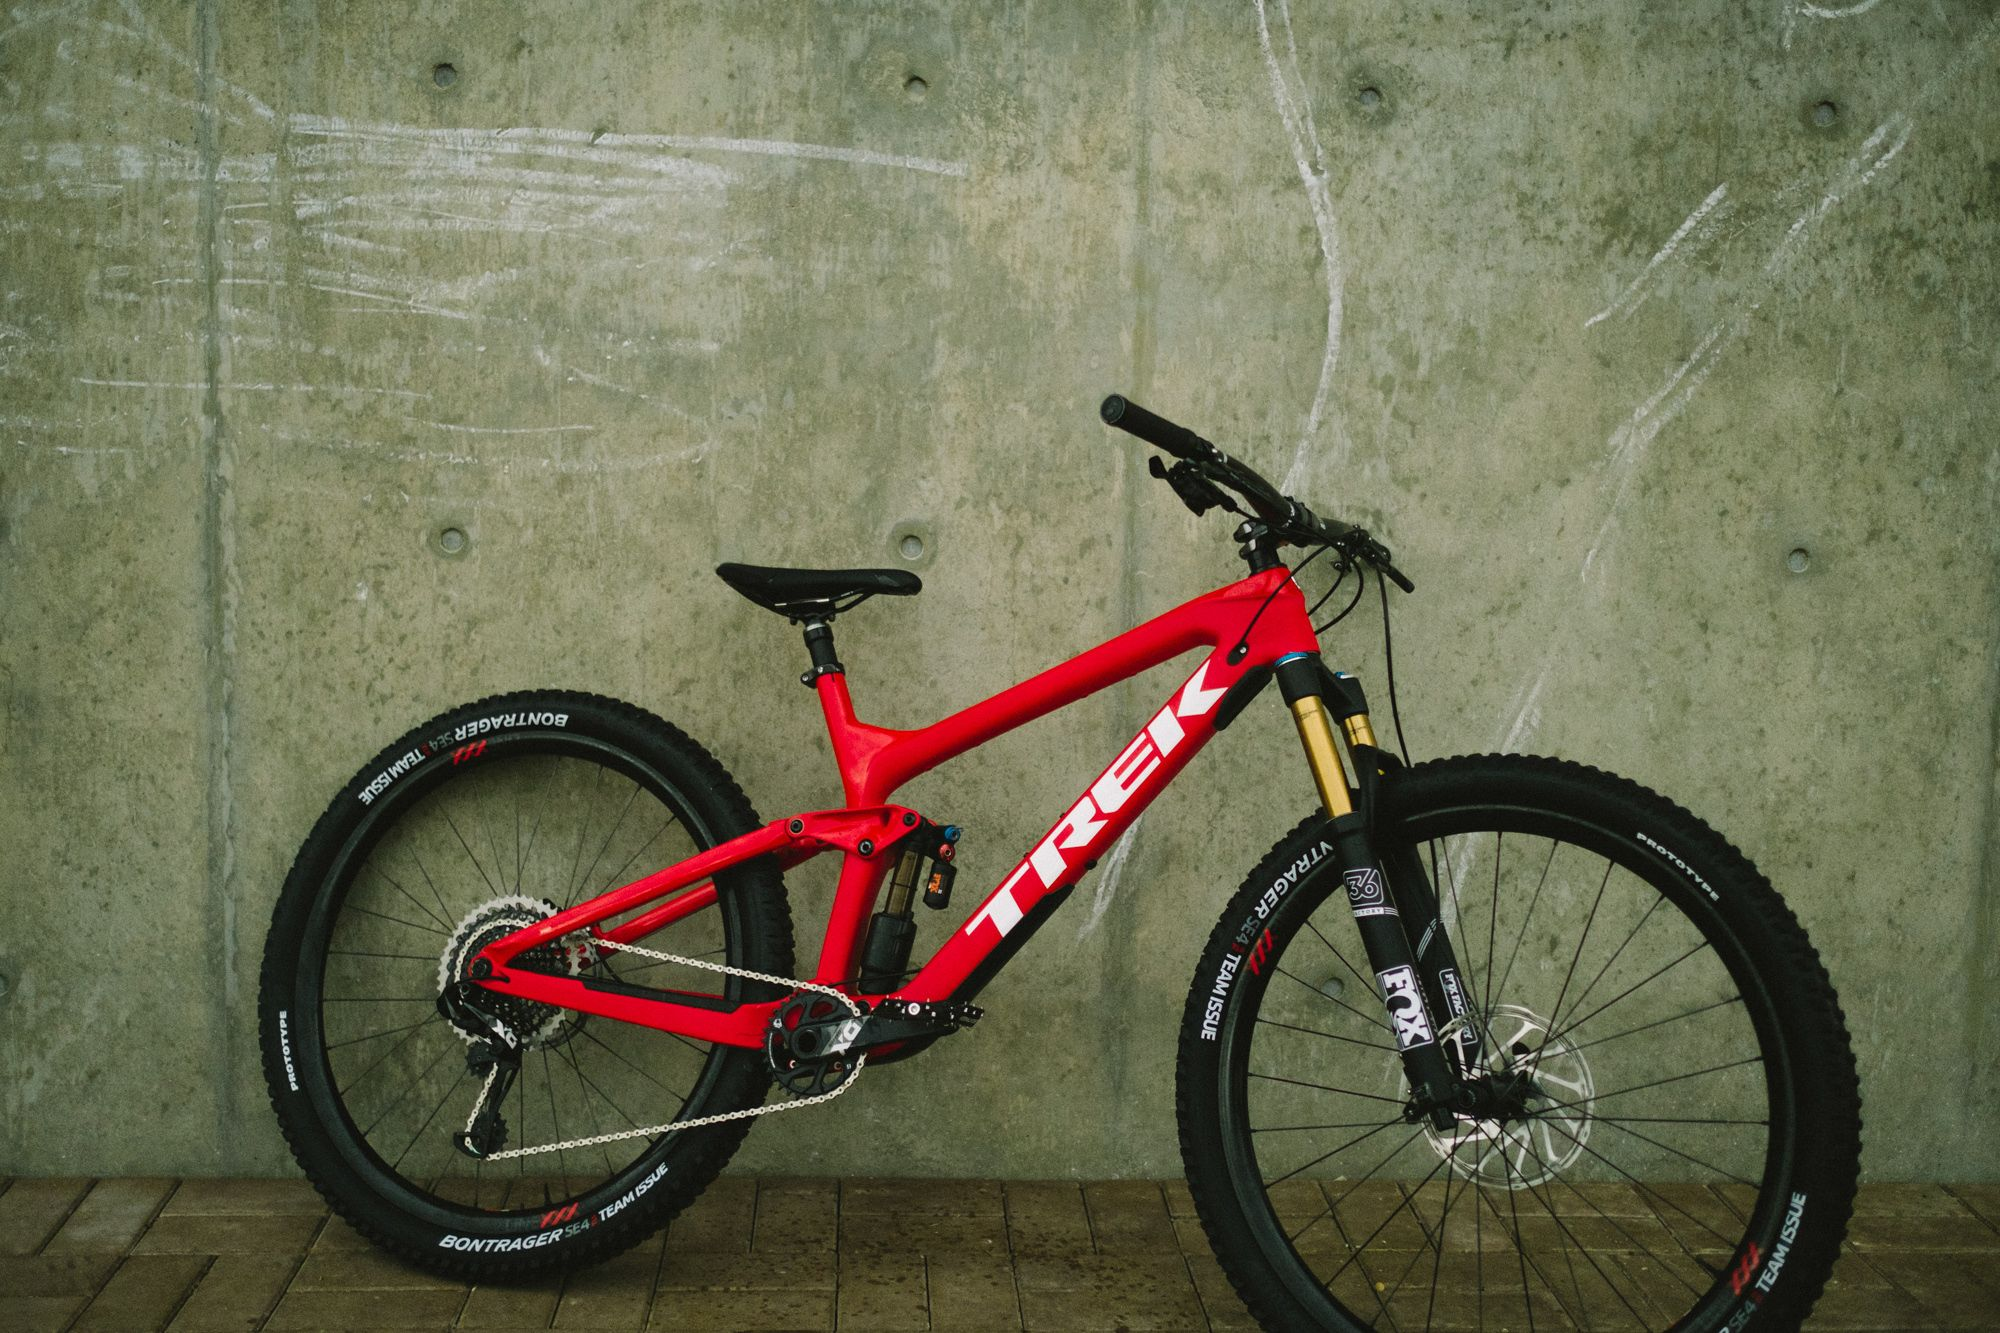 Trek MTB in beautiful red color | Bike Passion | Pinterest